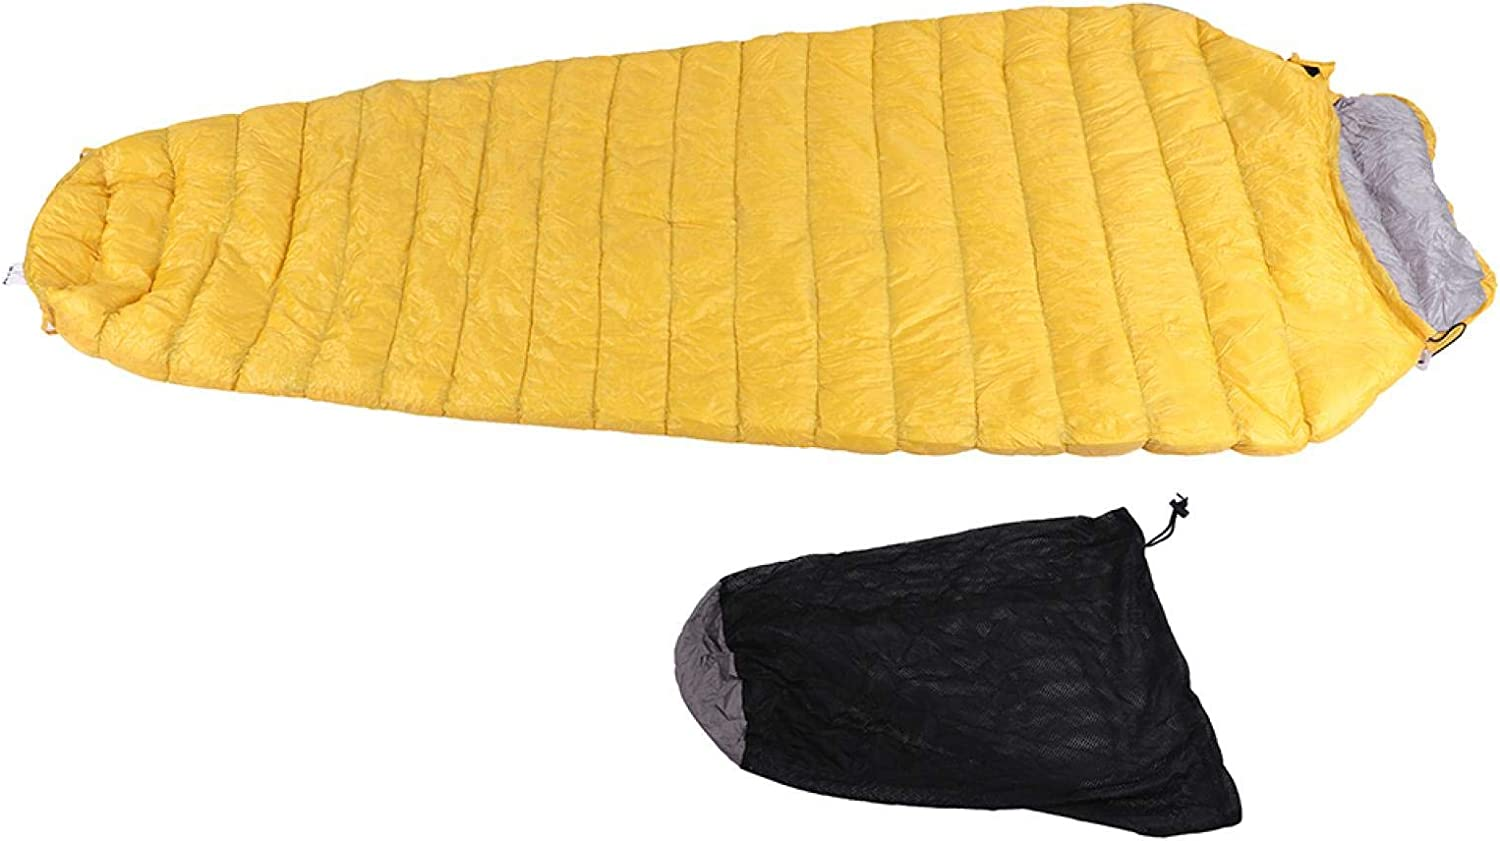 wholesale Winter Outdoor Foldable Adult Dealing full price reduction Nylon Sleeping for Travel Sing Bag